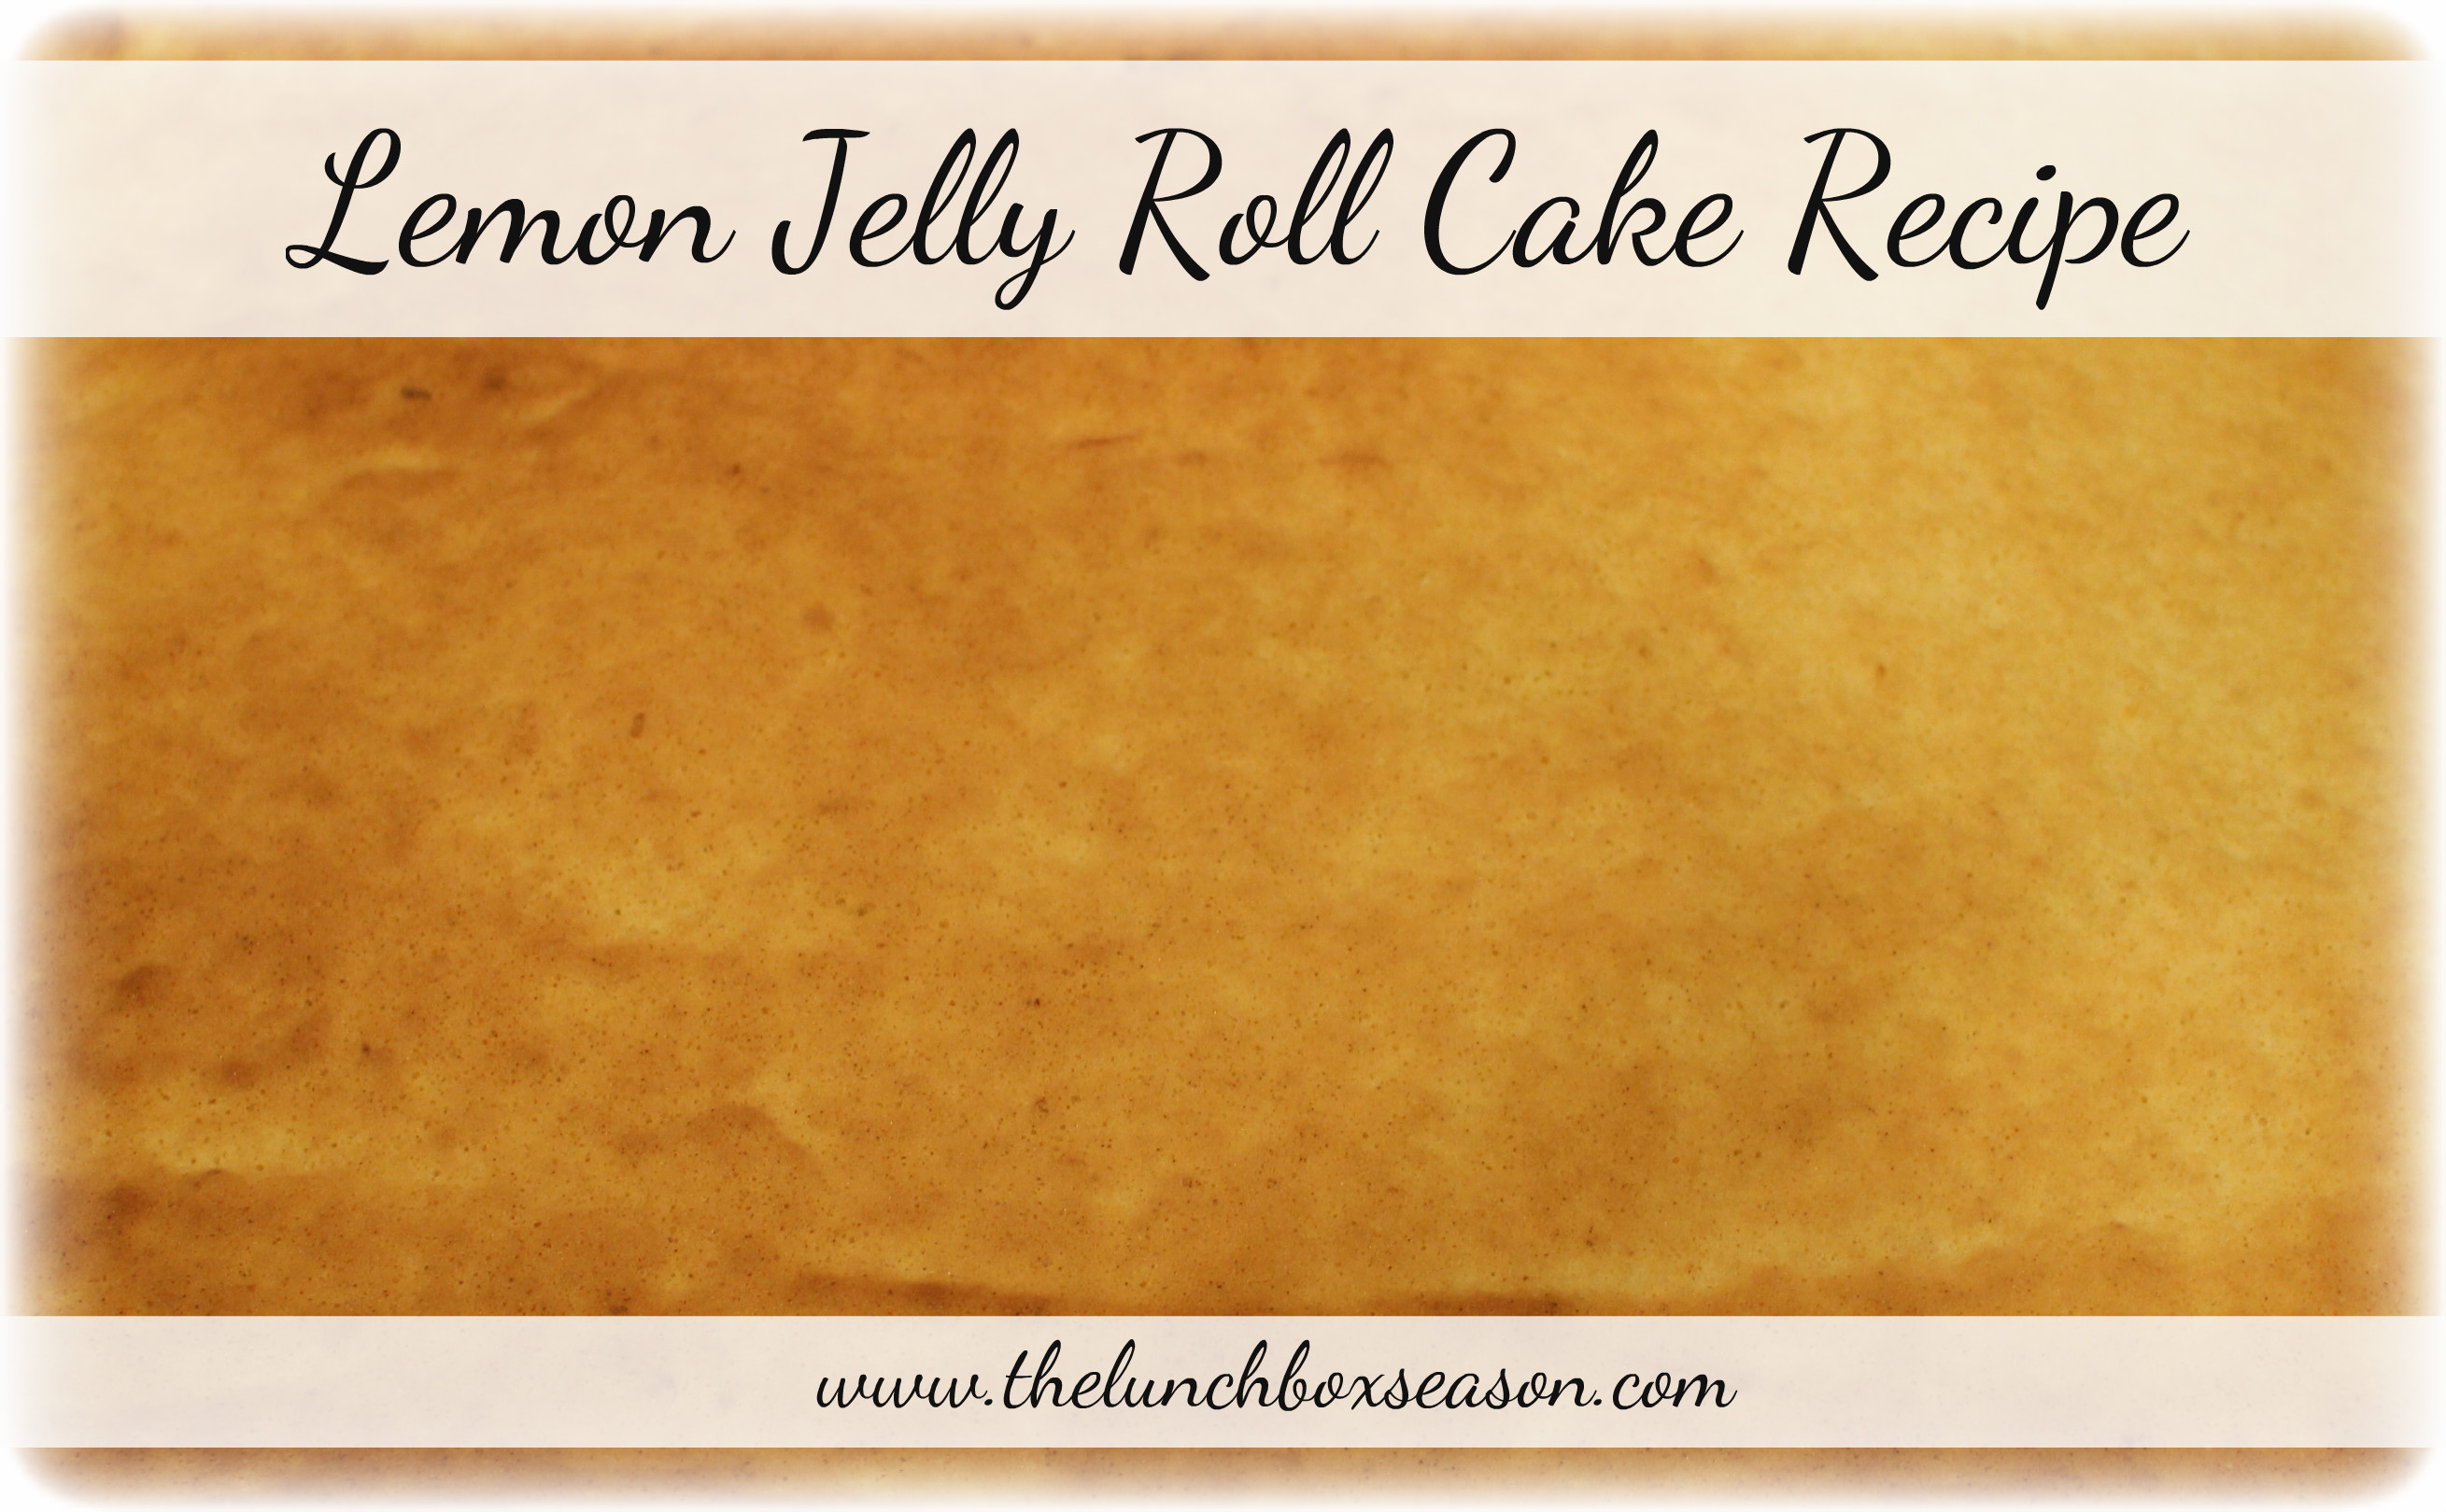 Lemon Jelly Roll Cake Recipe